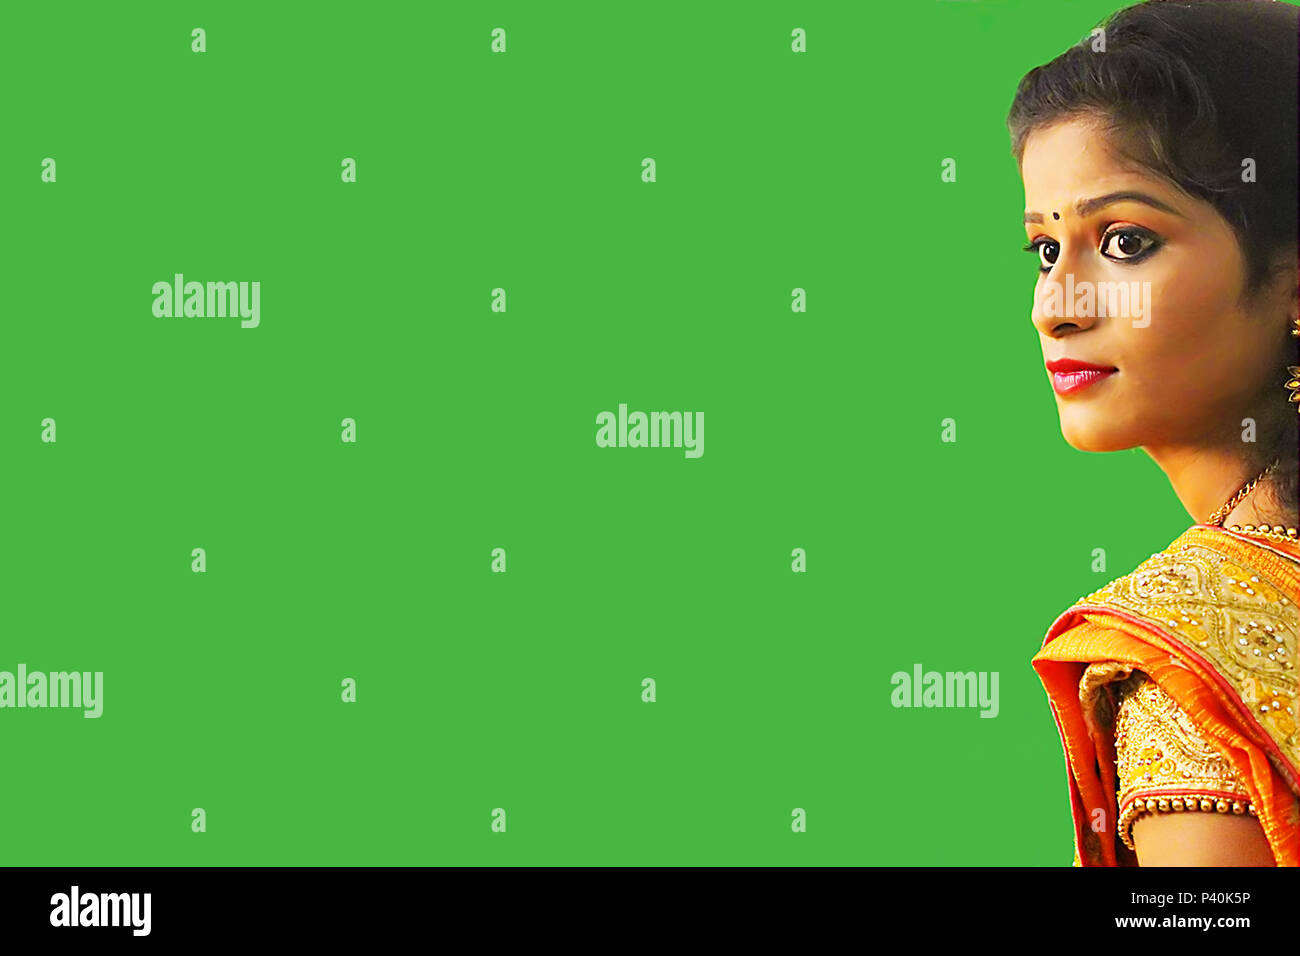 Green Sari Stock Photos & Green Sari Stock Images - Alamy